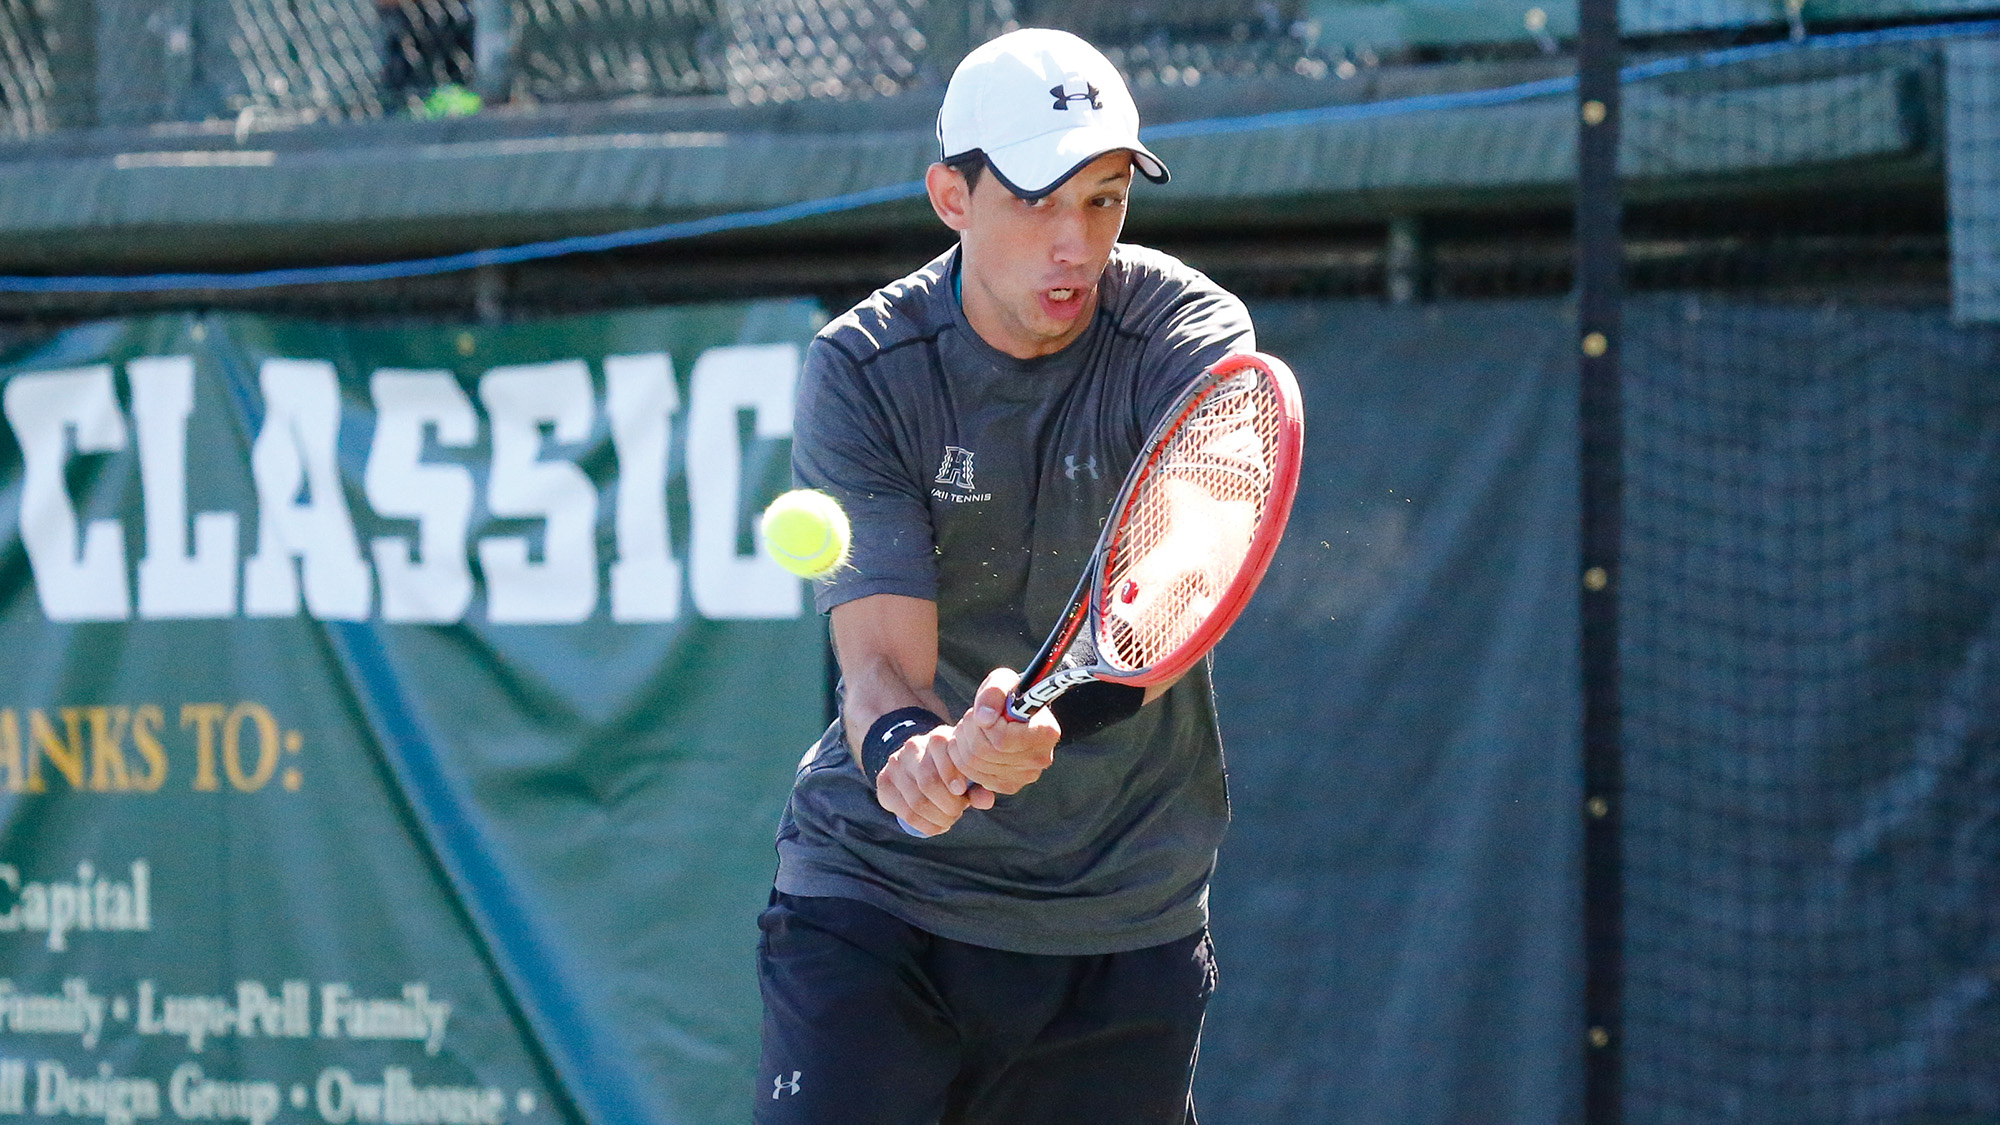 Cal Poly Defeats Men's Tennis, 4-0 - University of Hawai'i at Manoa